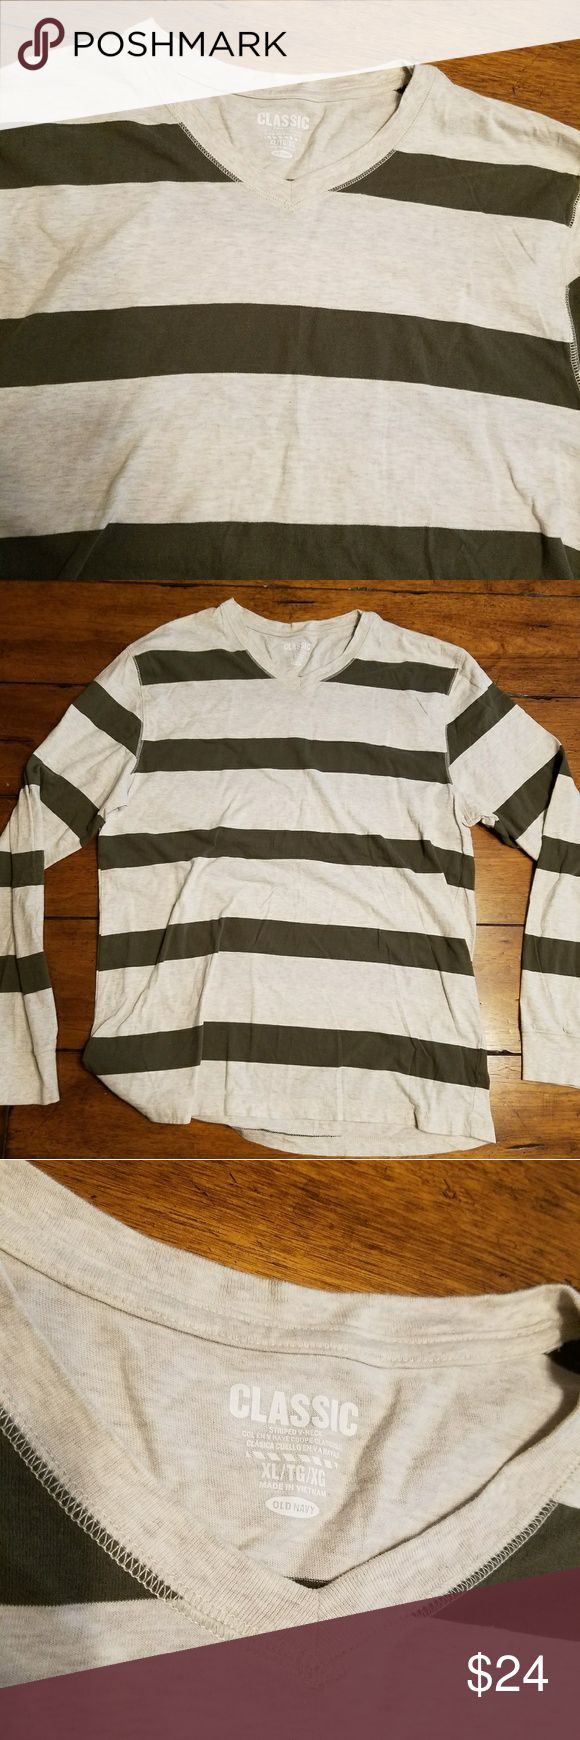 Bogo sale! Mens Old Navy Shirt Mens cream & army green striped long sleeve shirt by old navy. New without tags. Excellent condition. Entire closet bogo 50% off. Bundle and use the offer button. Old Navy Shirts Tees - Long Sleeve